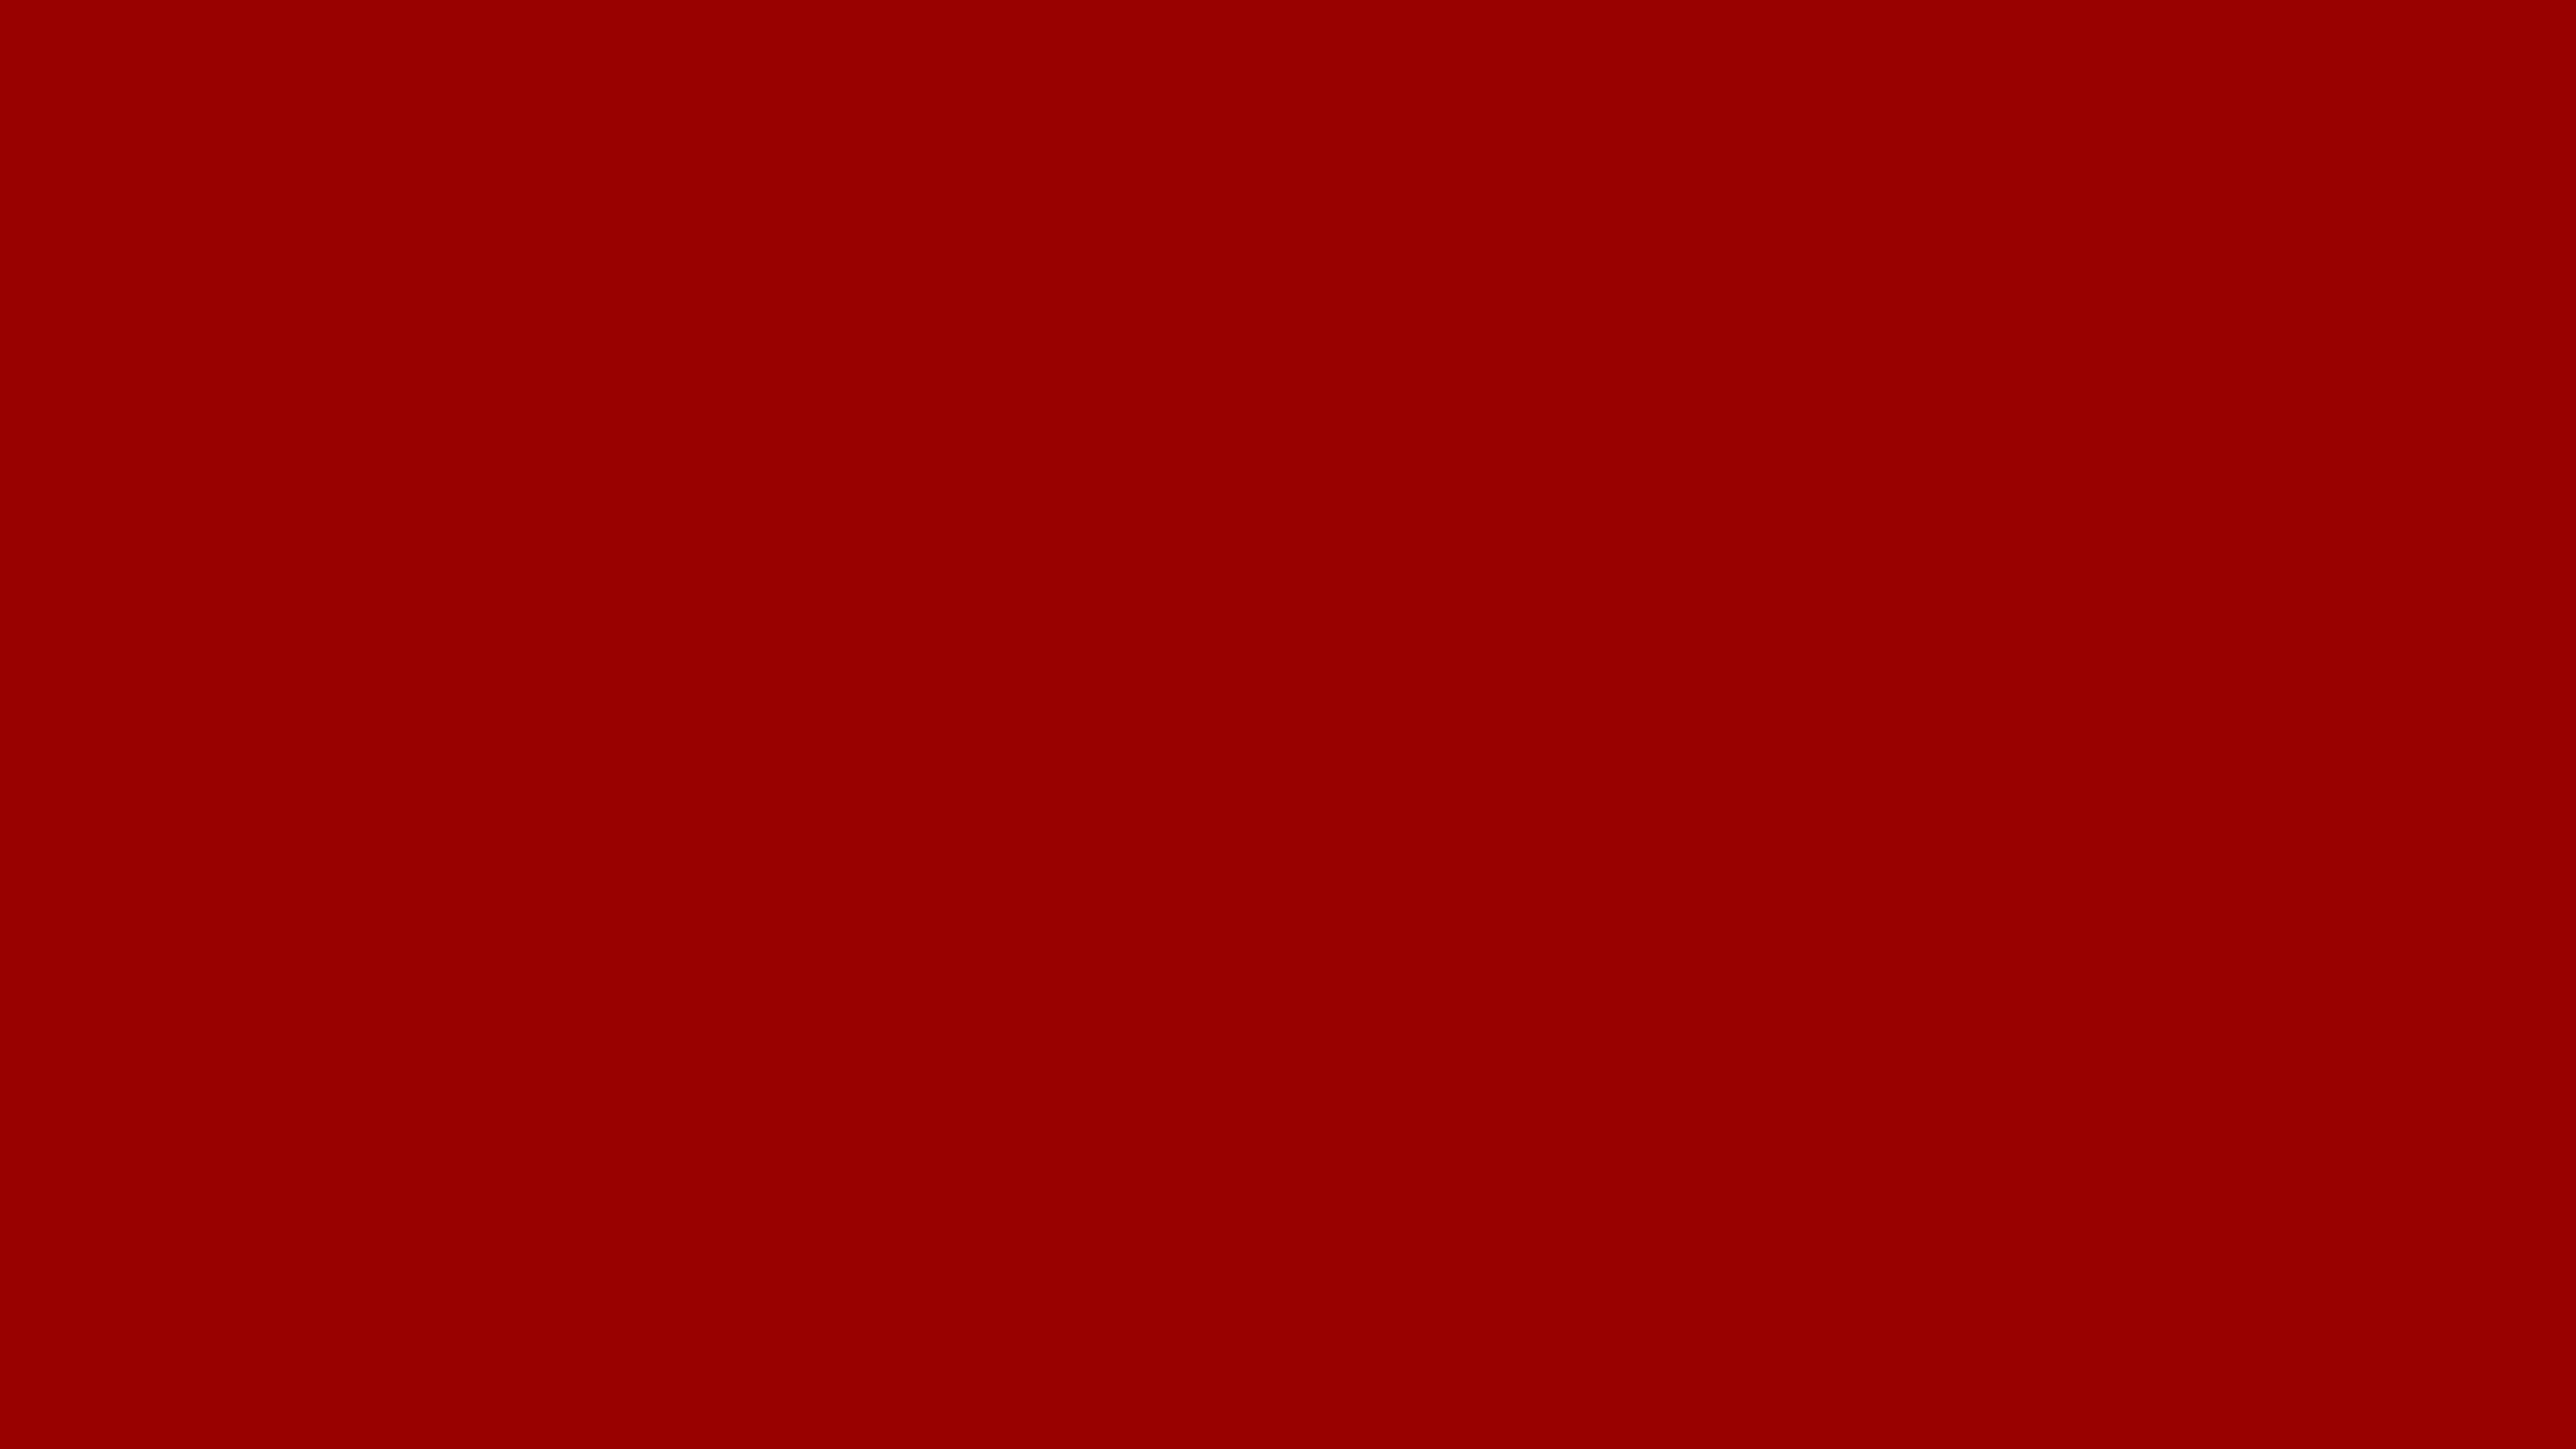 5120x2880 USC Cardinal Solid Color Background